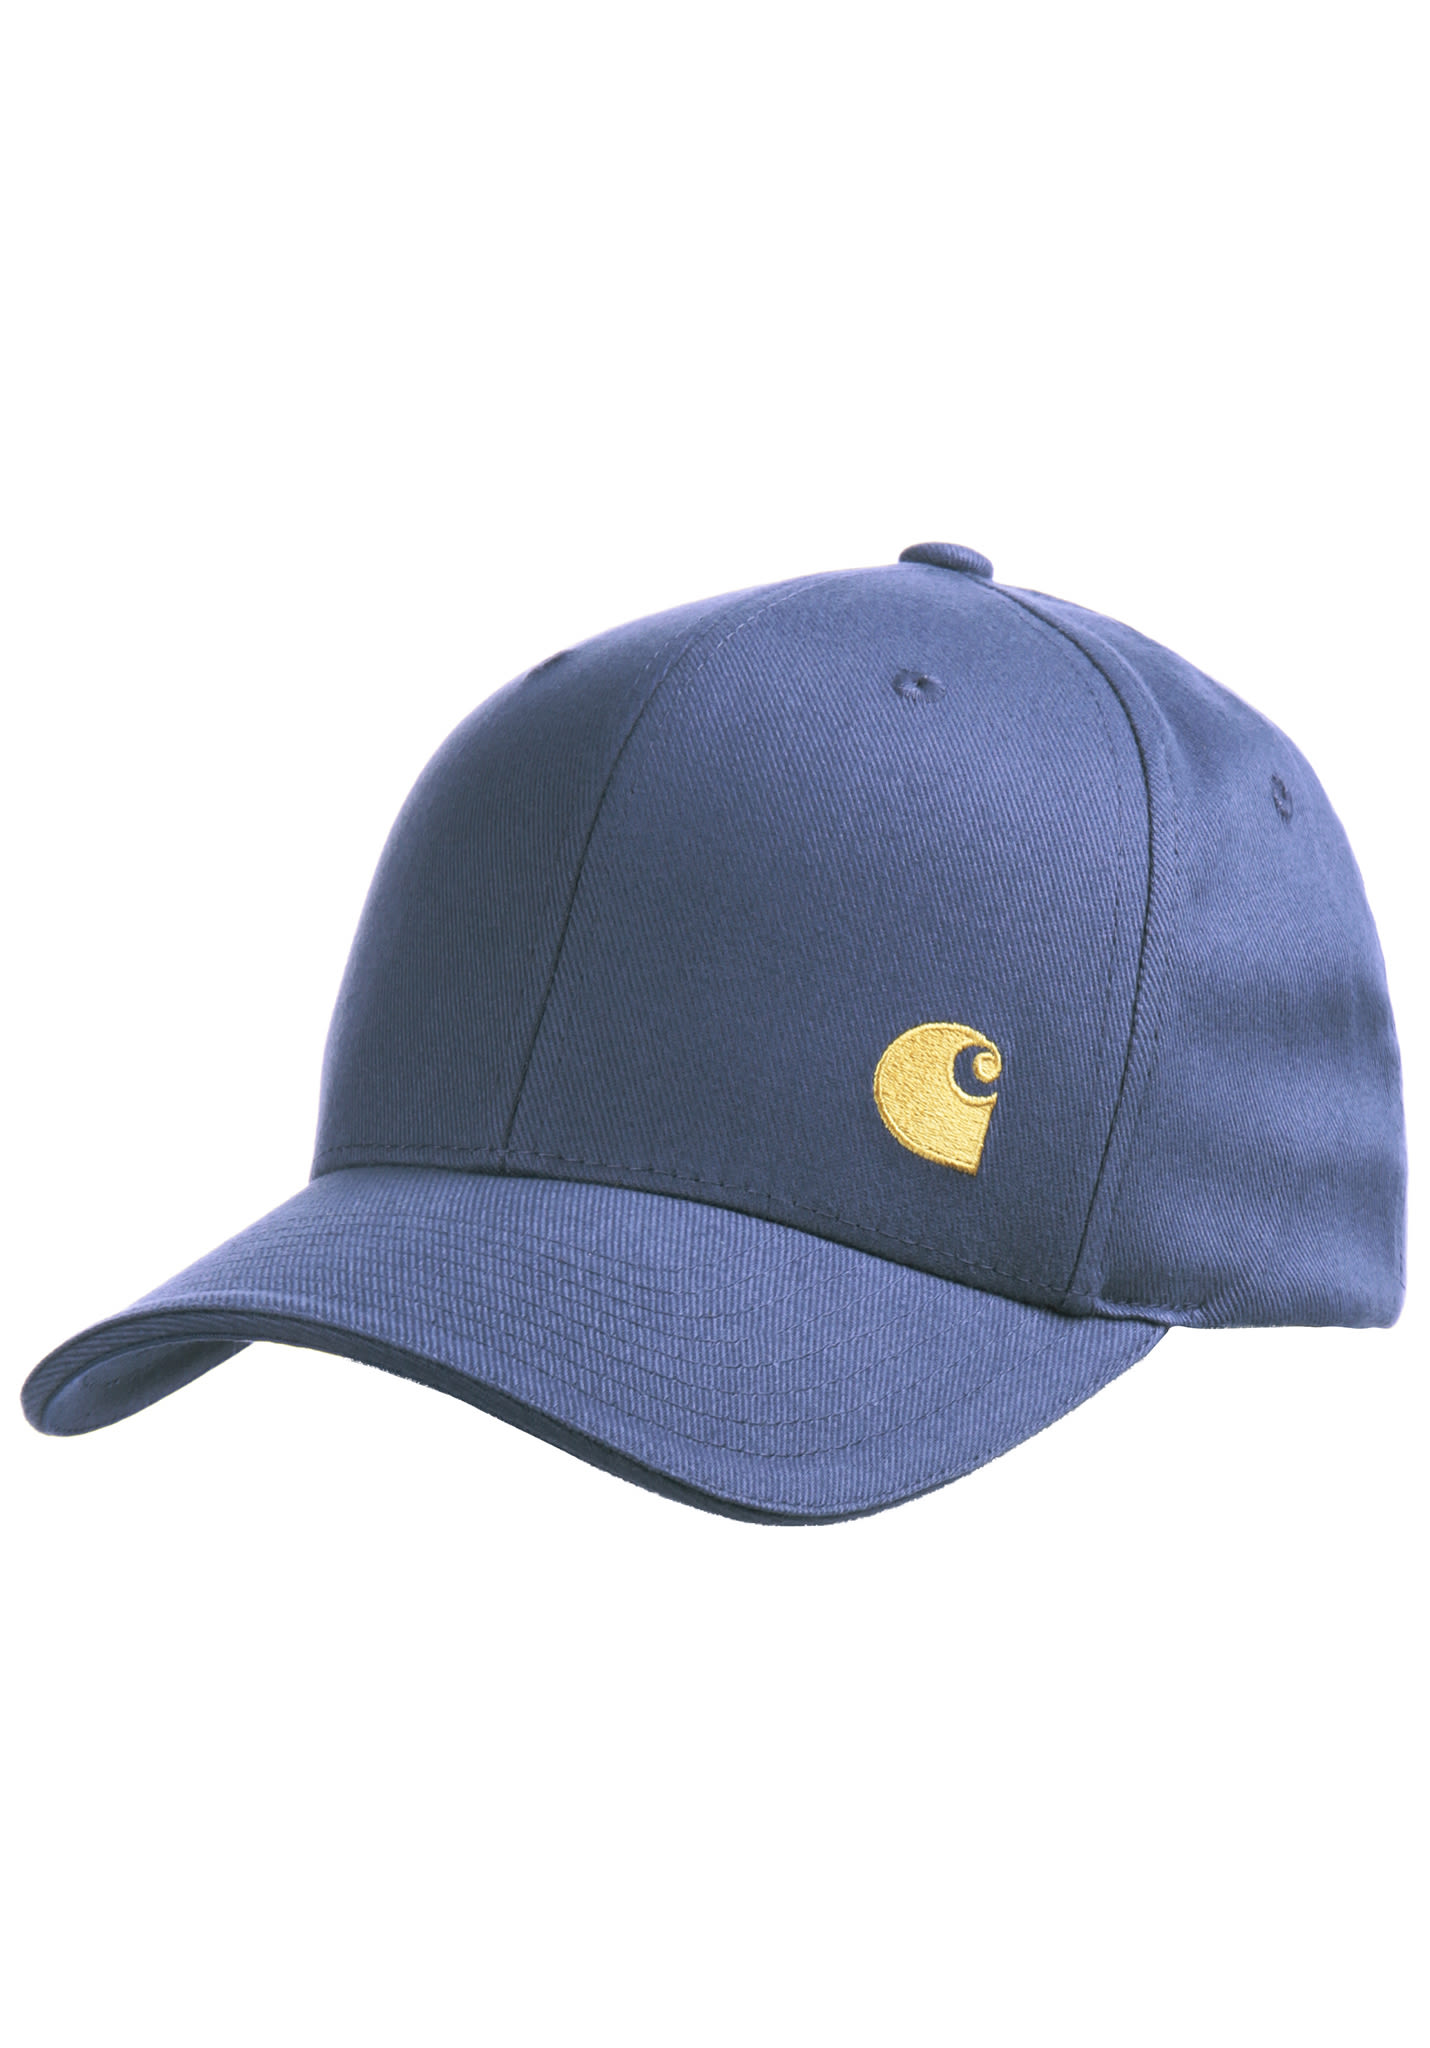 920967d252f23 carhartt WIP Match - Flexfit Cap for Men - Blue - Planet Sports